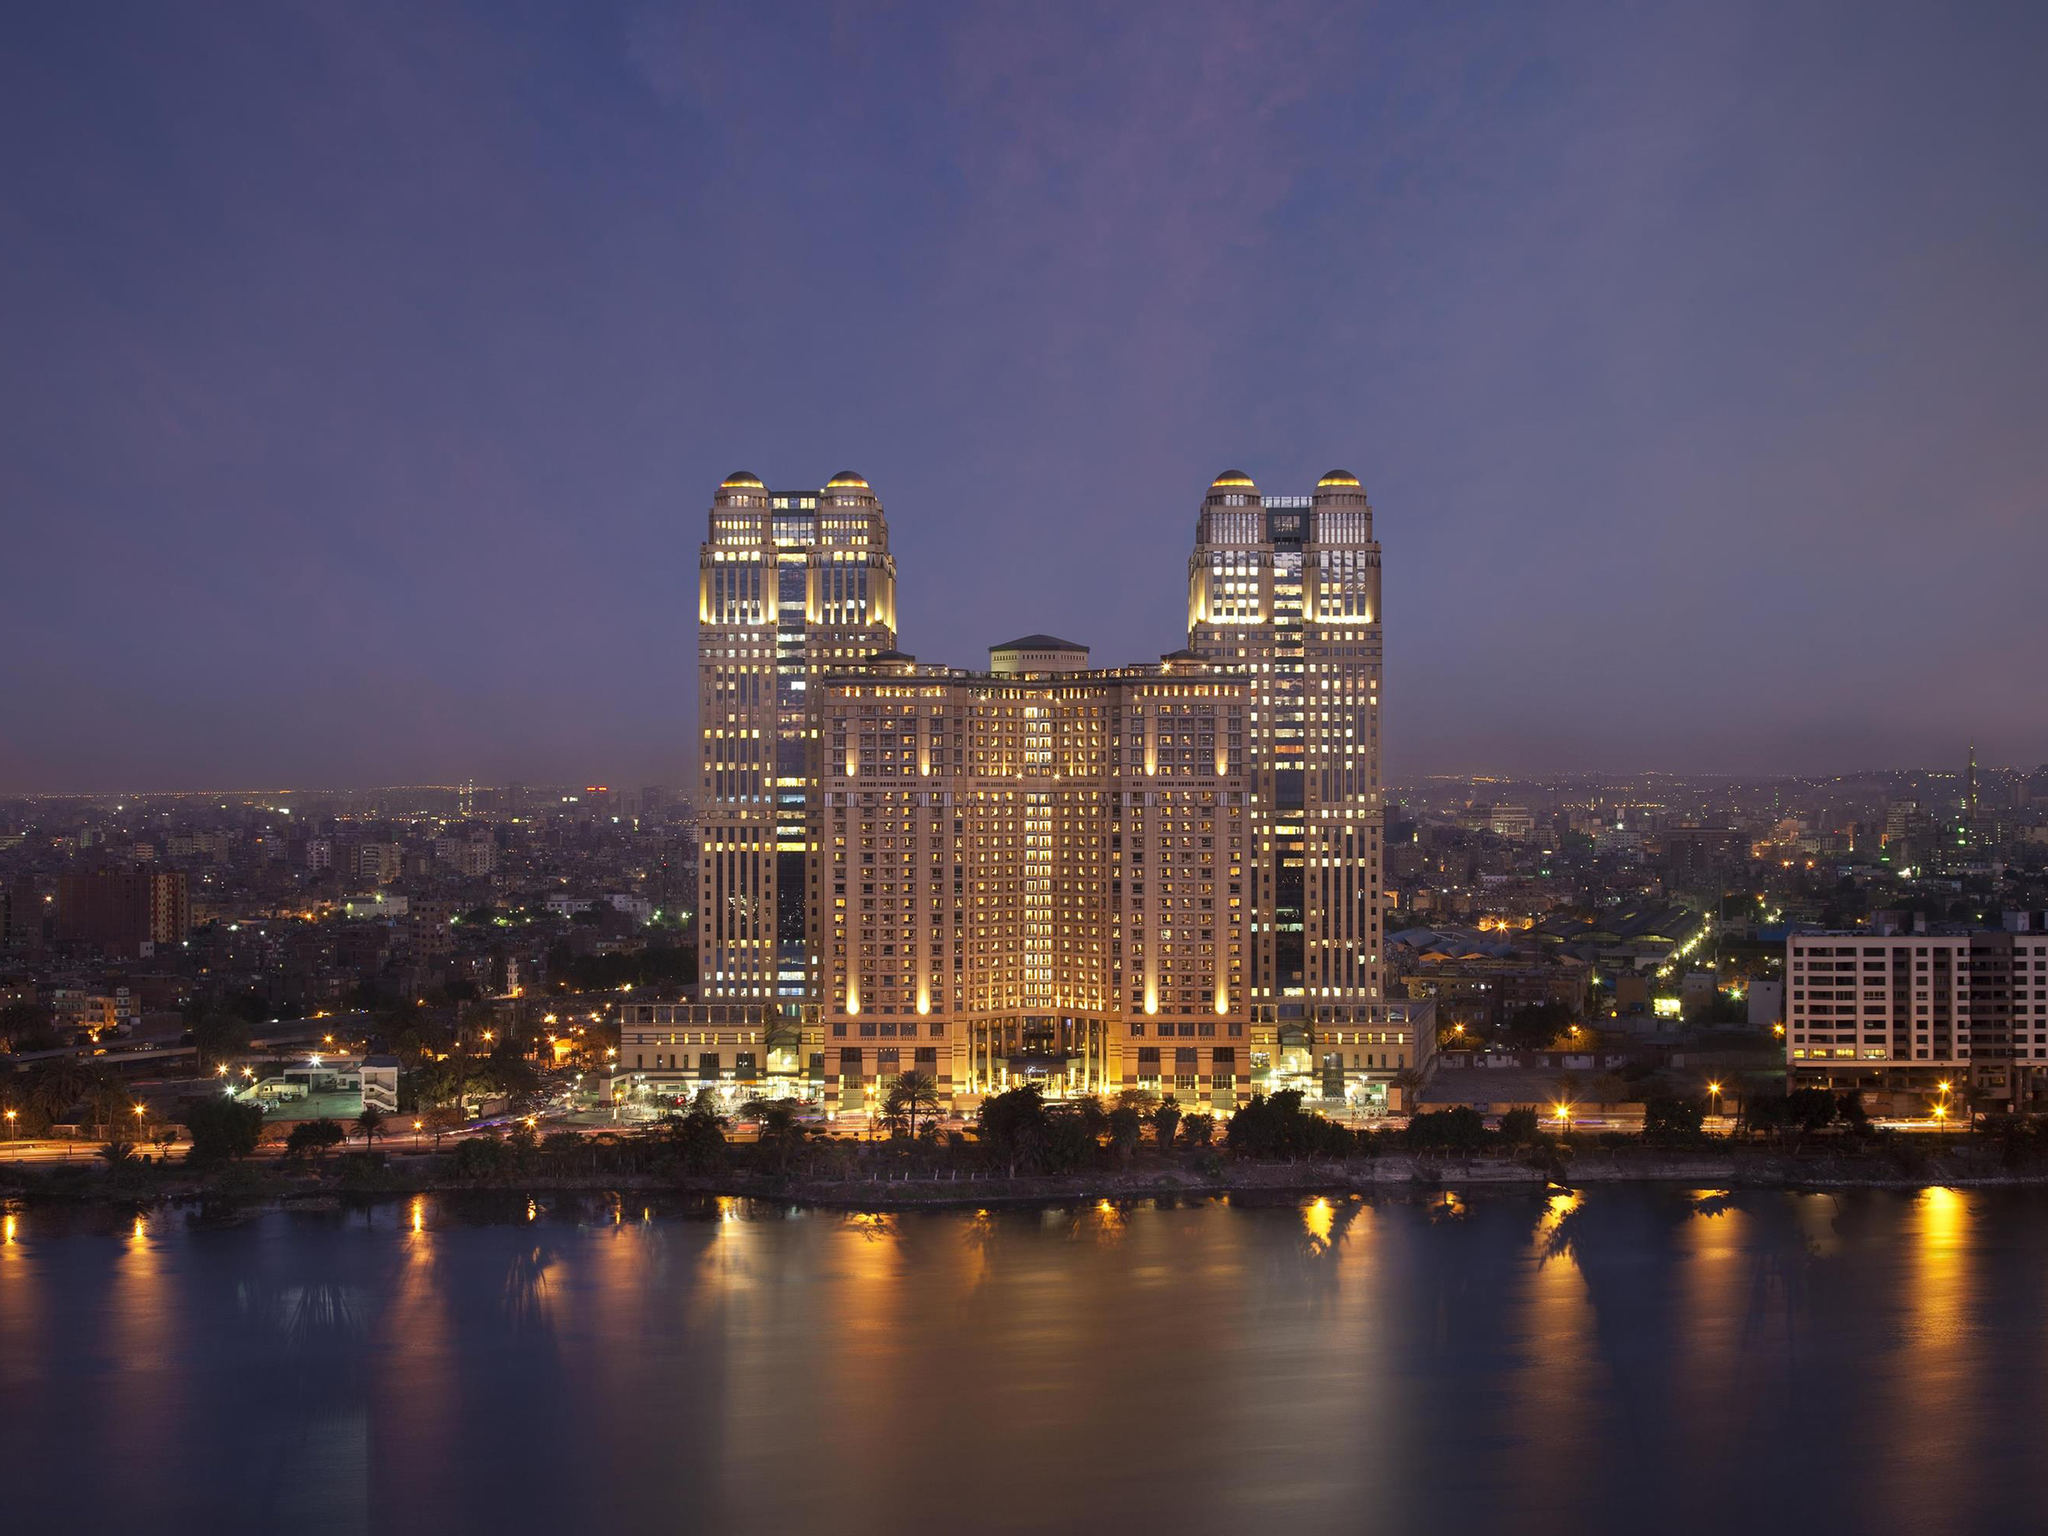 Hotell – Fairmont Nile City